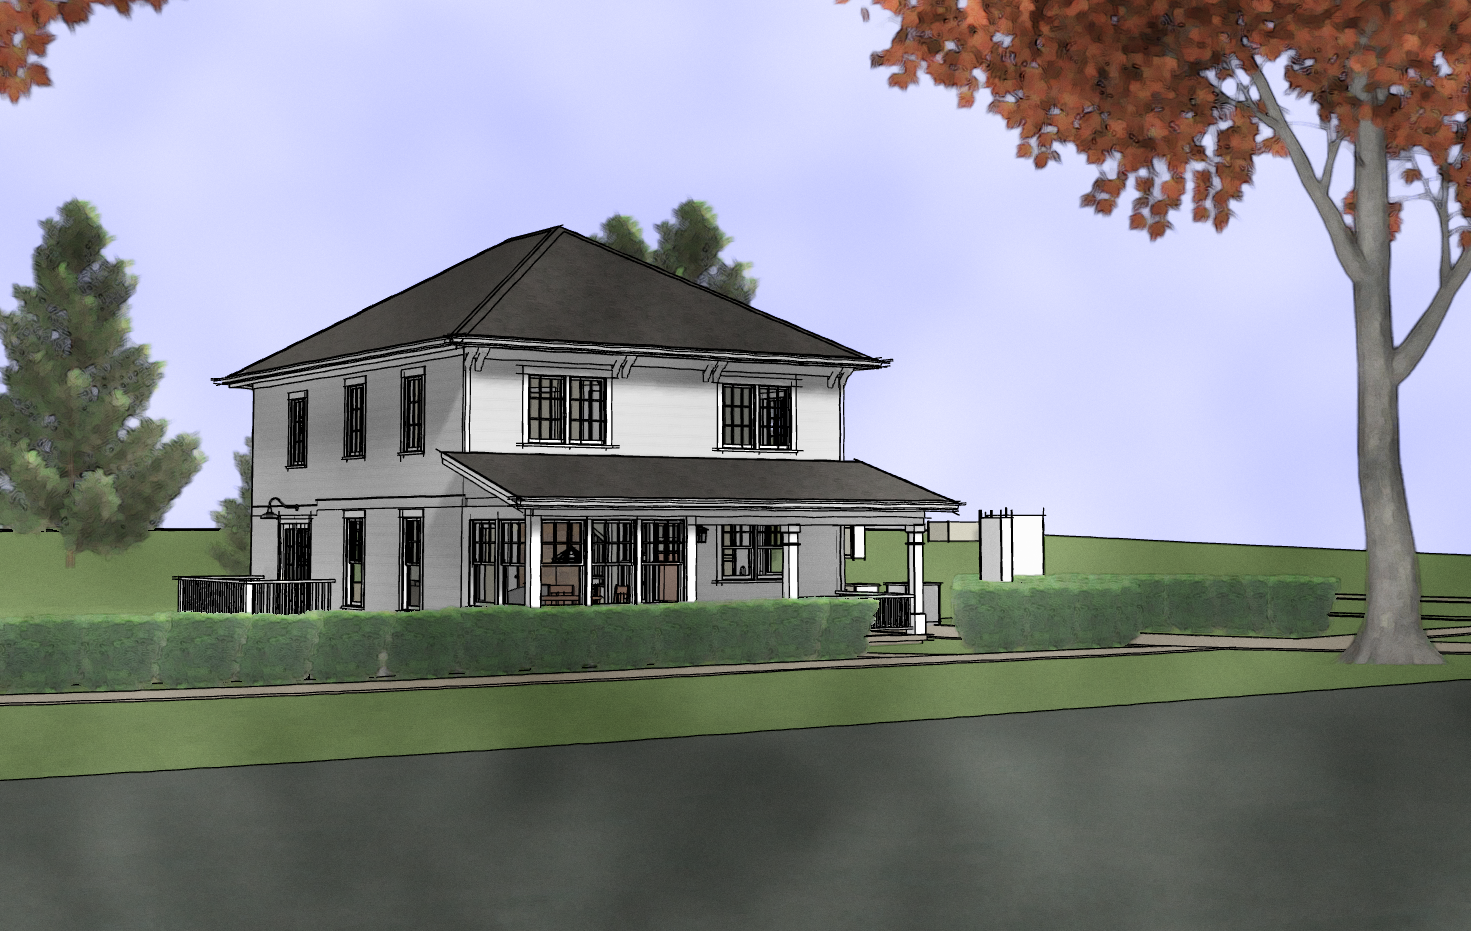 Proposed house w/ full second floor and truss roof